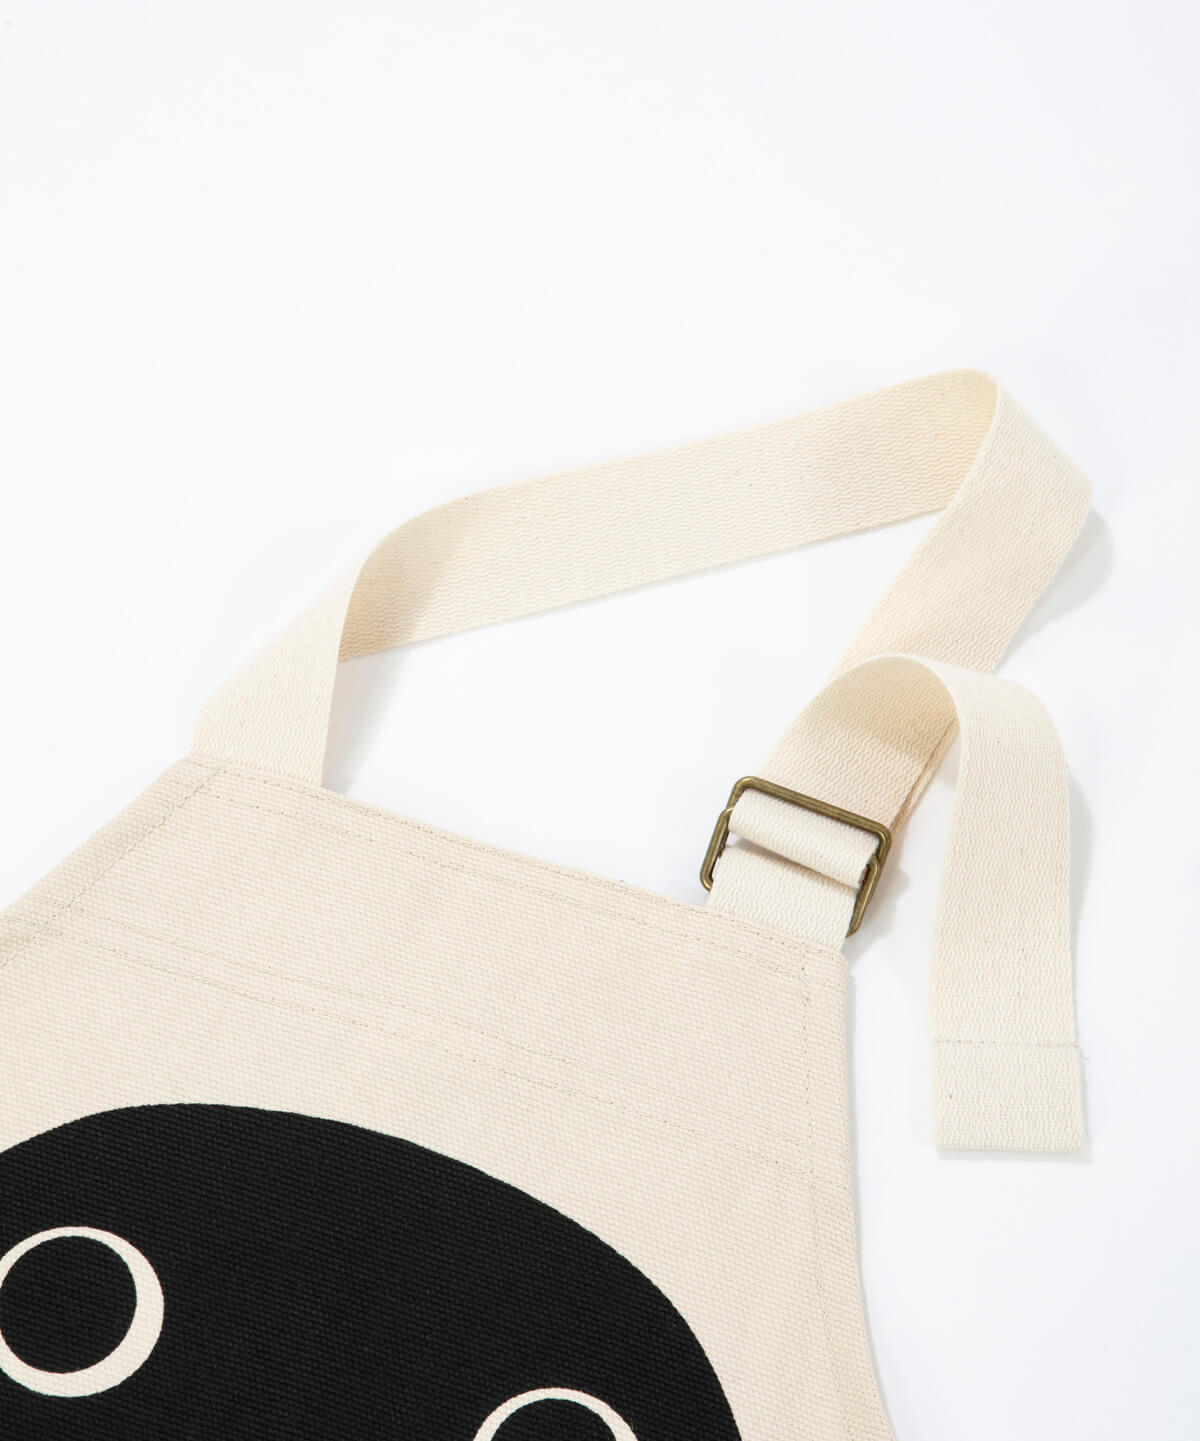 Kid's Booby Apron(キッズブービーエプロン(キッズ|エプロン))